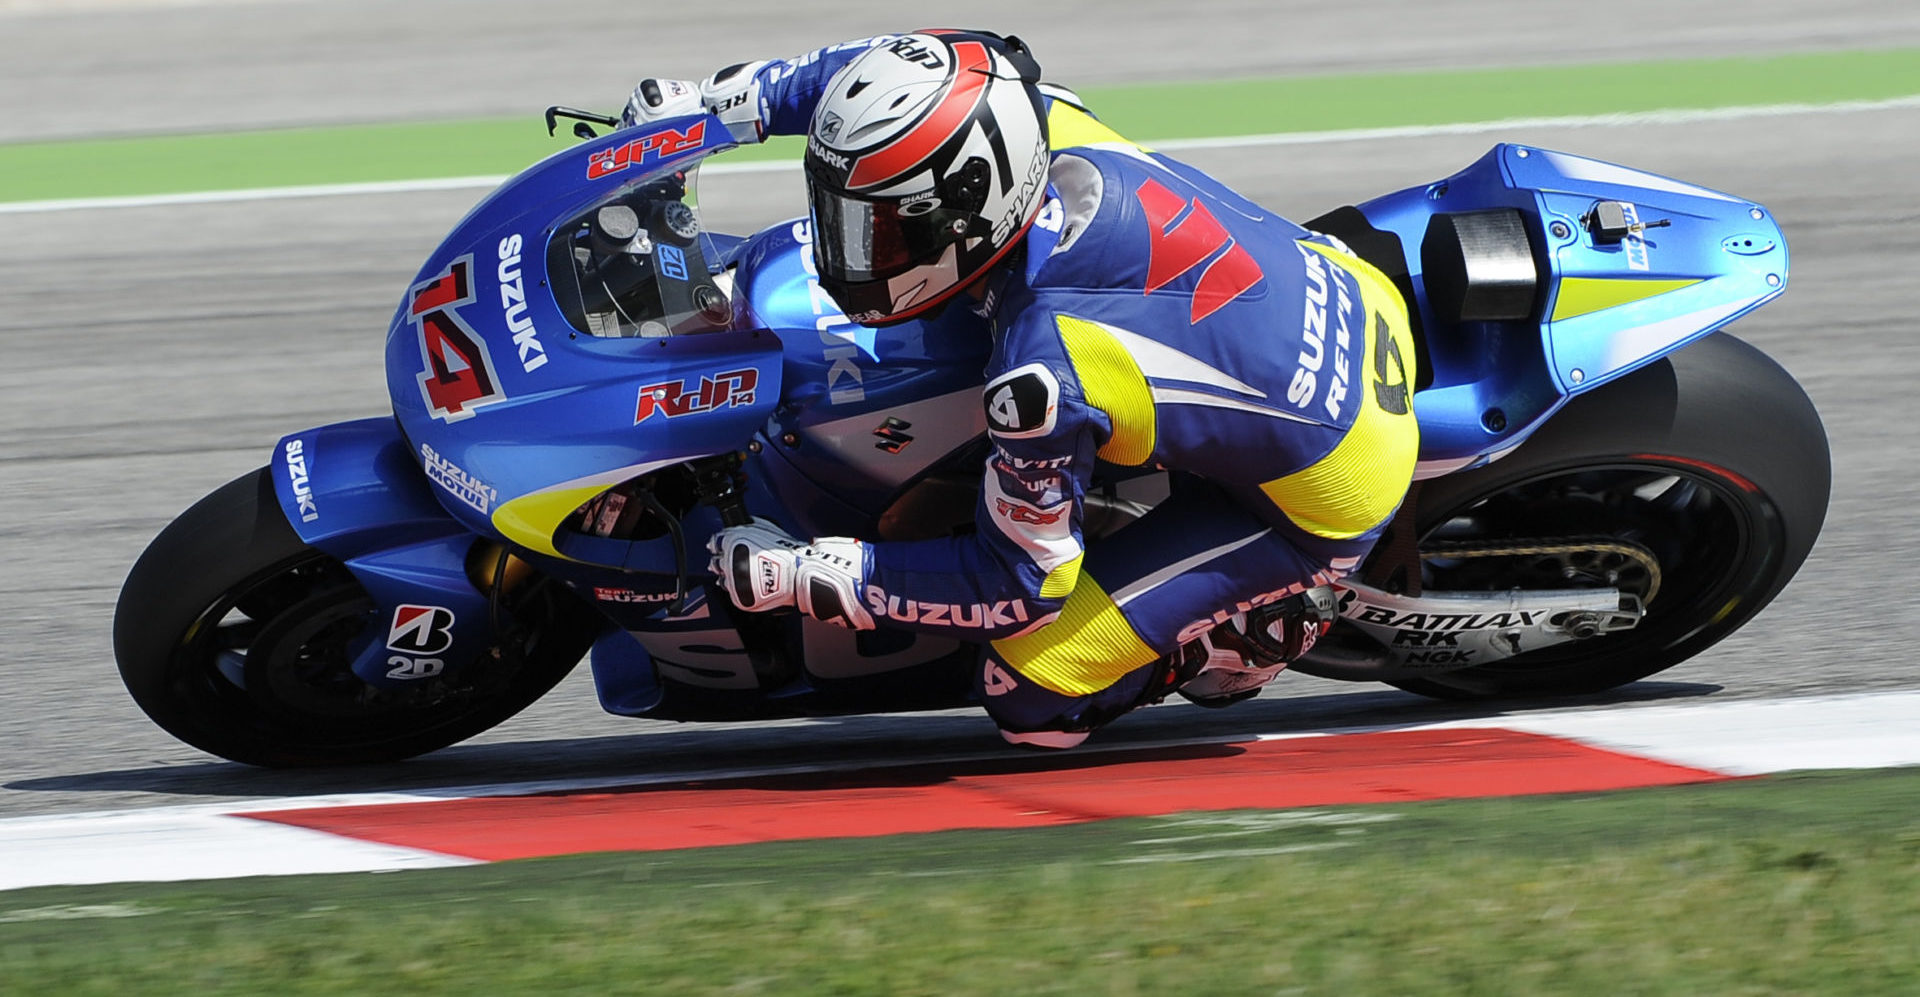 Randy de Puniet (14) testing the Suzuki GSX-RR MotoGP prototype at the Misano Circuit in 2013. Photo courtesy Team Suzuki Press Office.